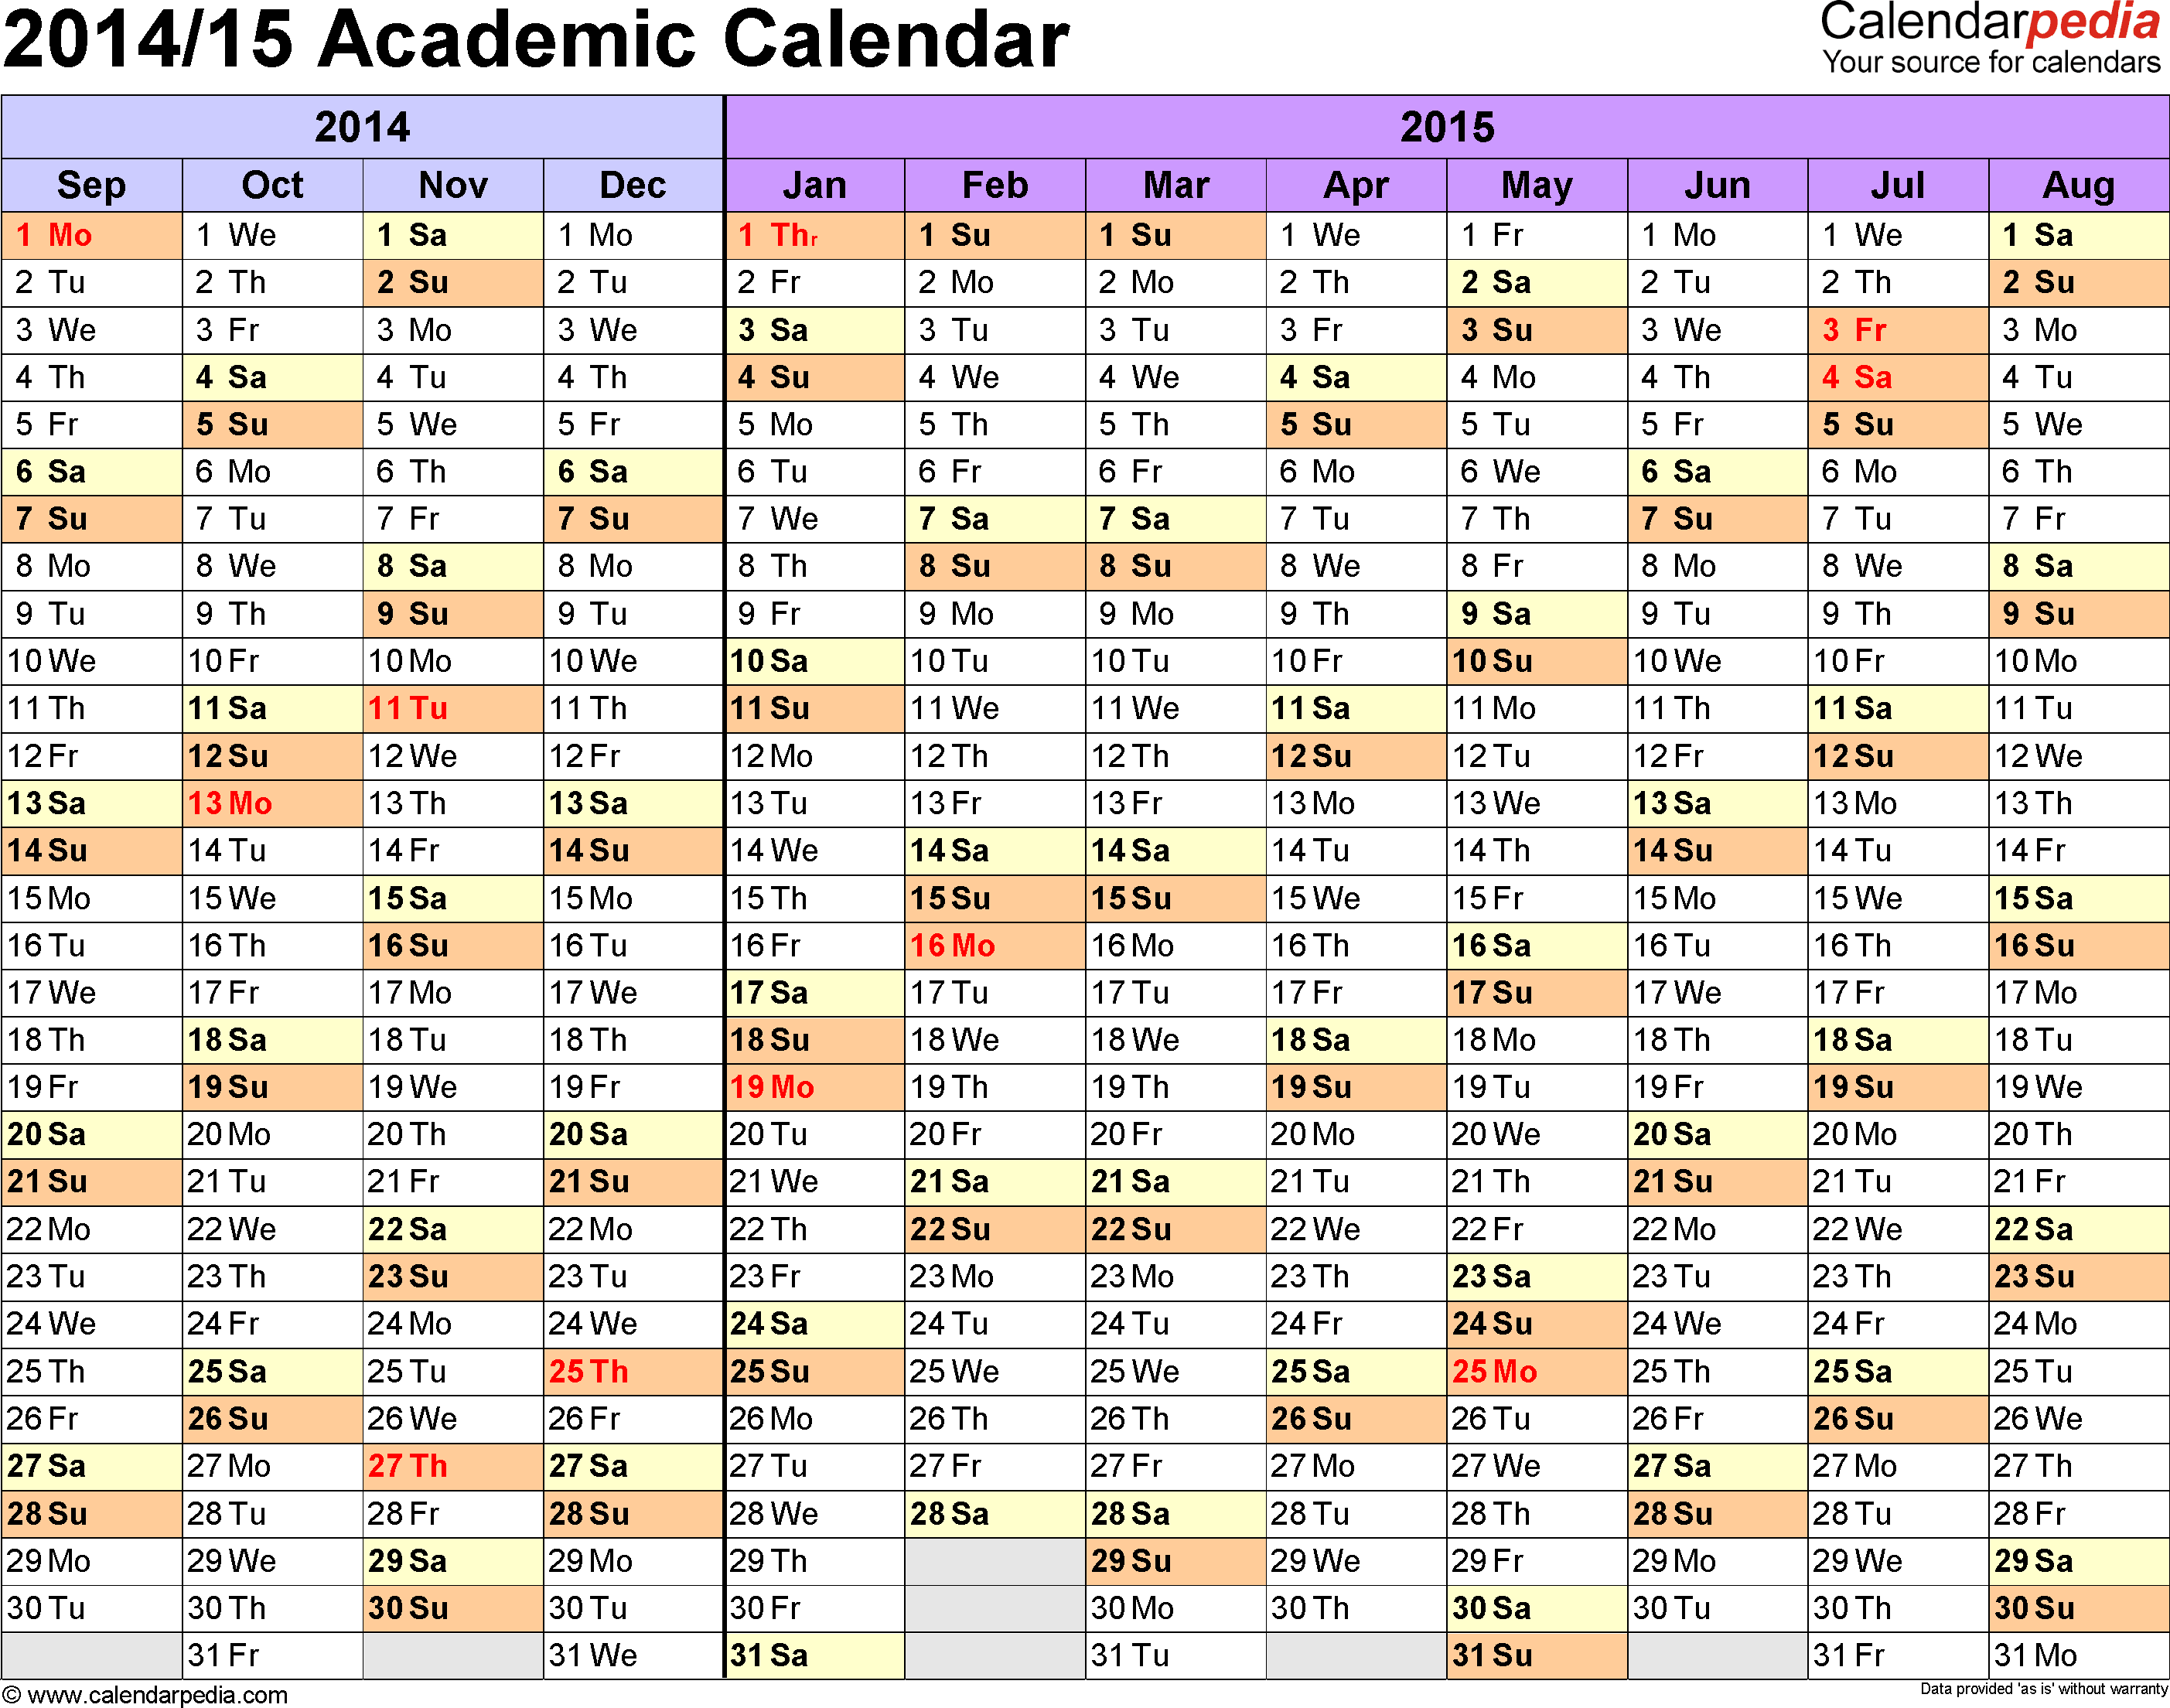 Download Template 1: Academic calendar 2014/15 for Microsoft Word (.docx file), landscape, 1 page